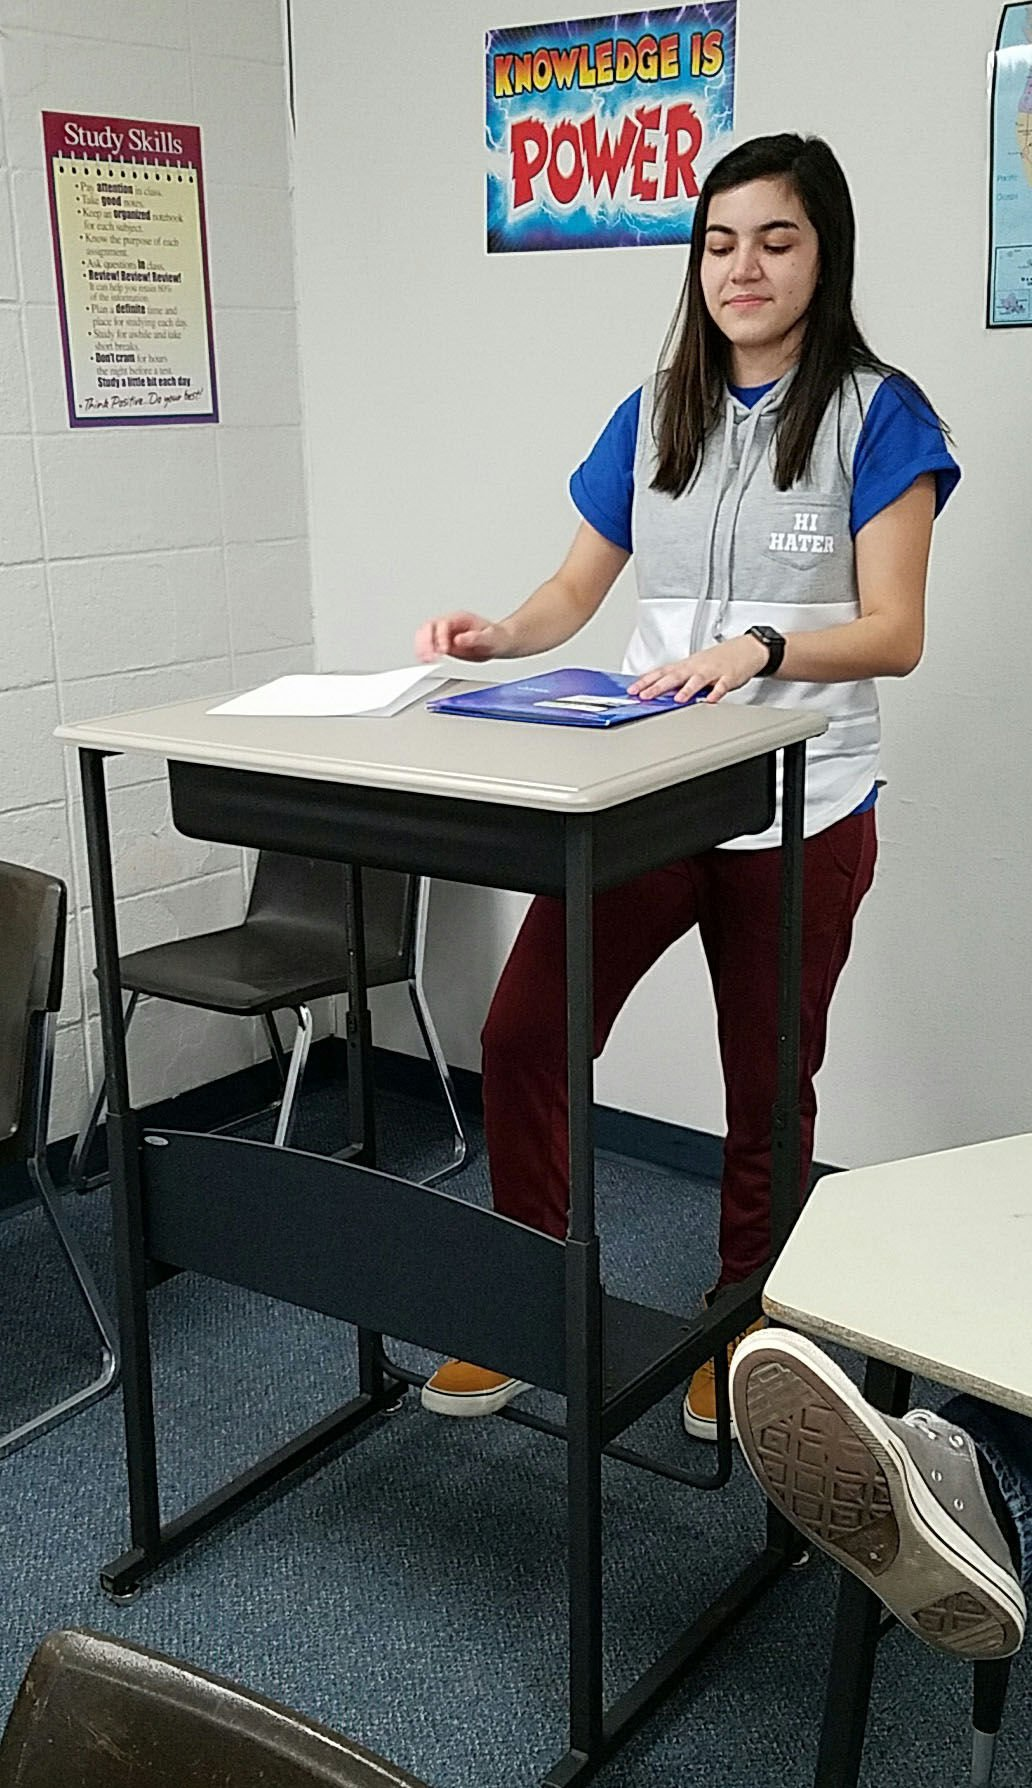 Stand and deliver Bettendorf High School classroom tests standing